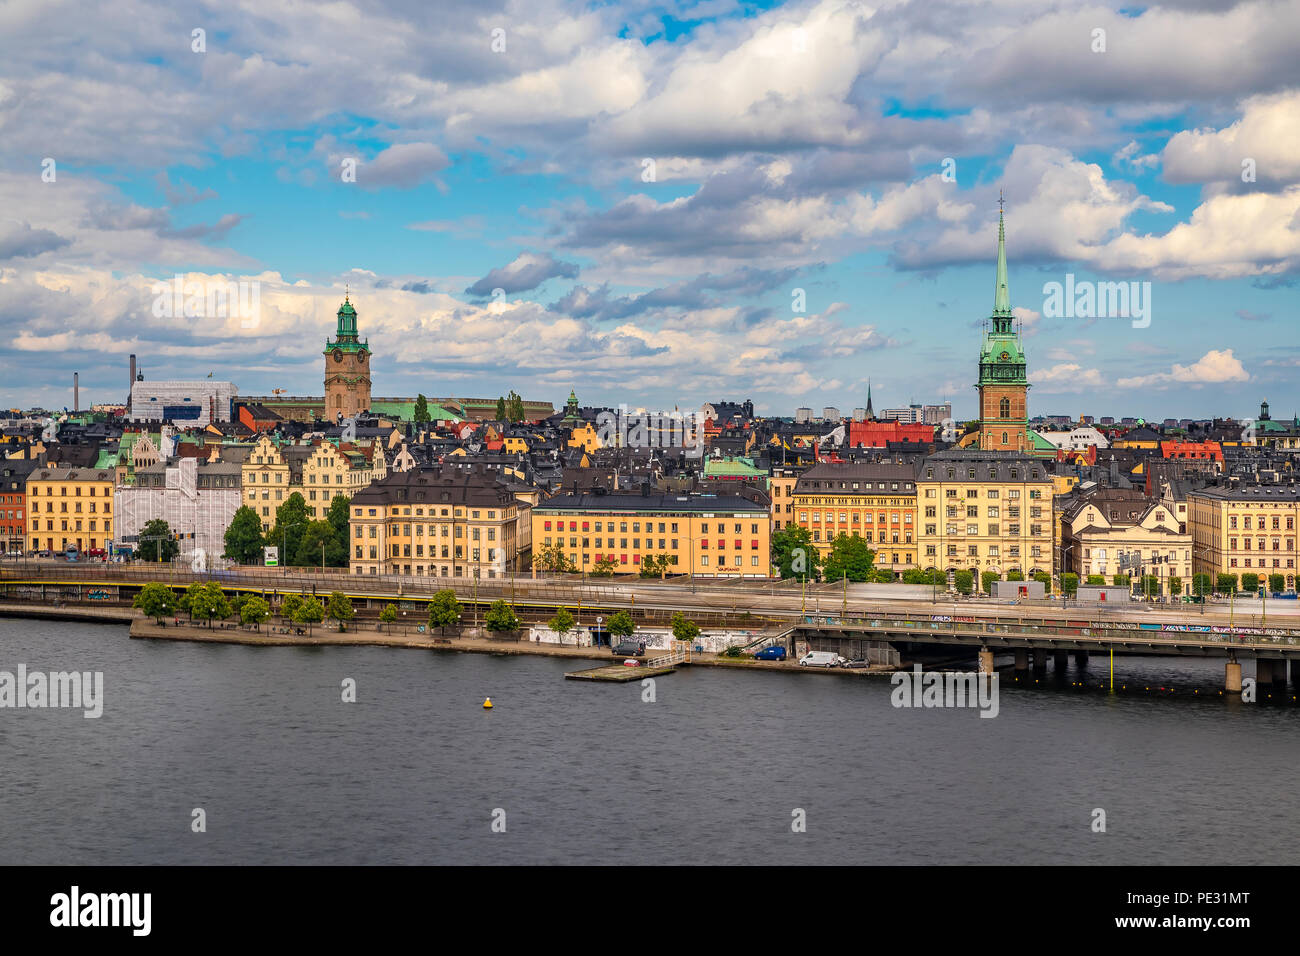 Traditional gothic buildings in the old town, Gamla Stan in Stockholm, Sweden - Stock Image